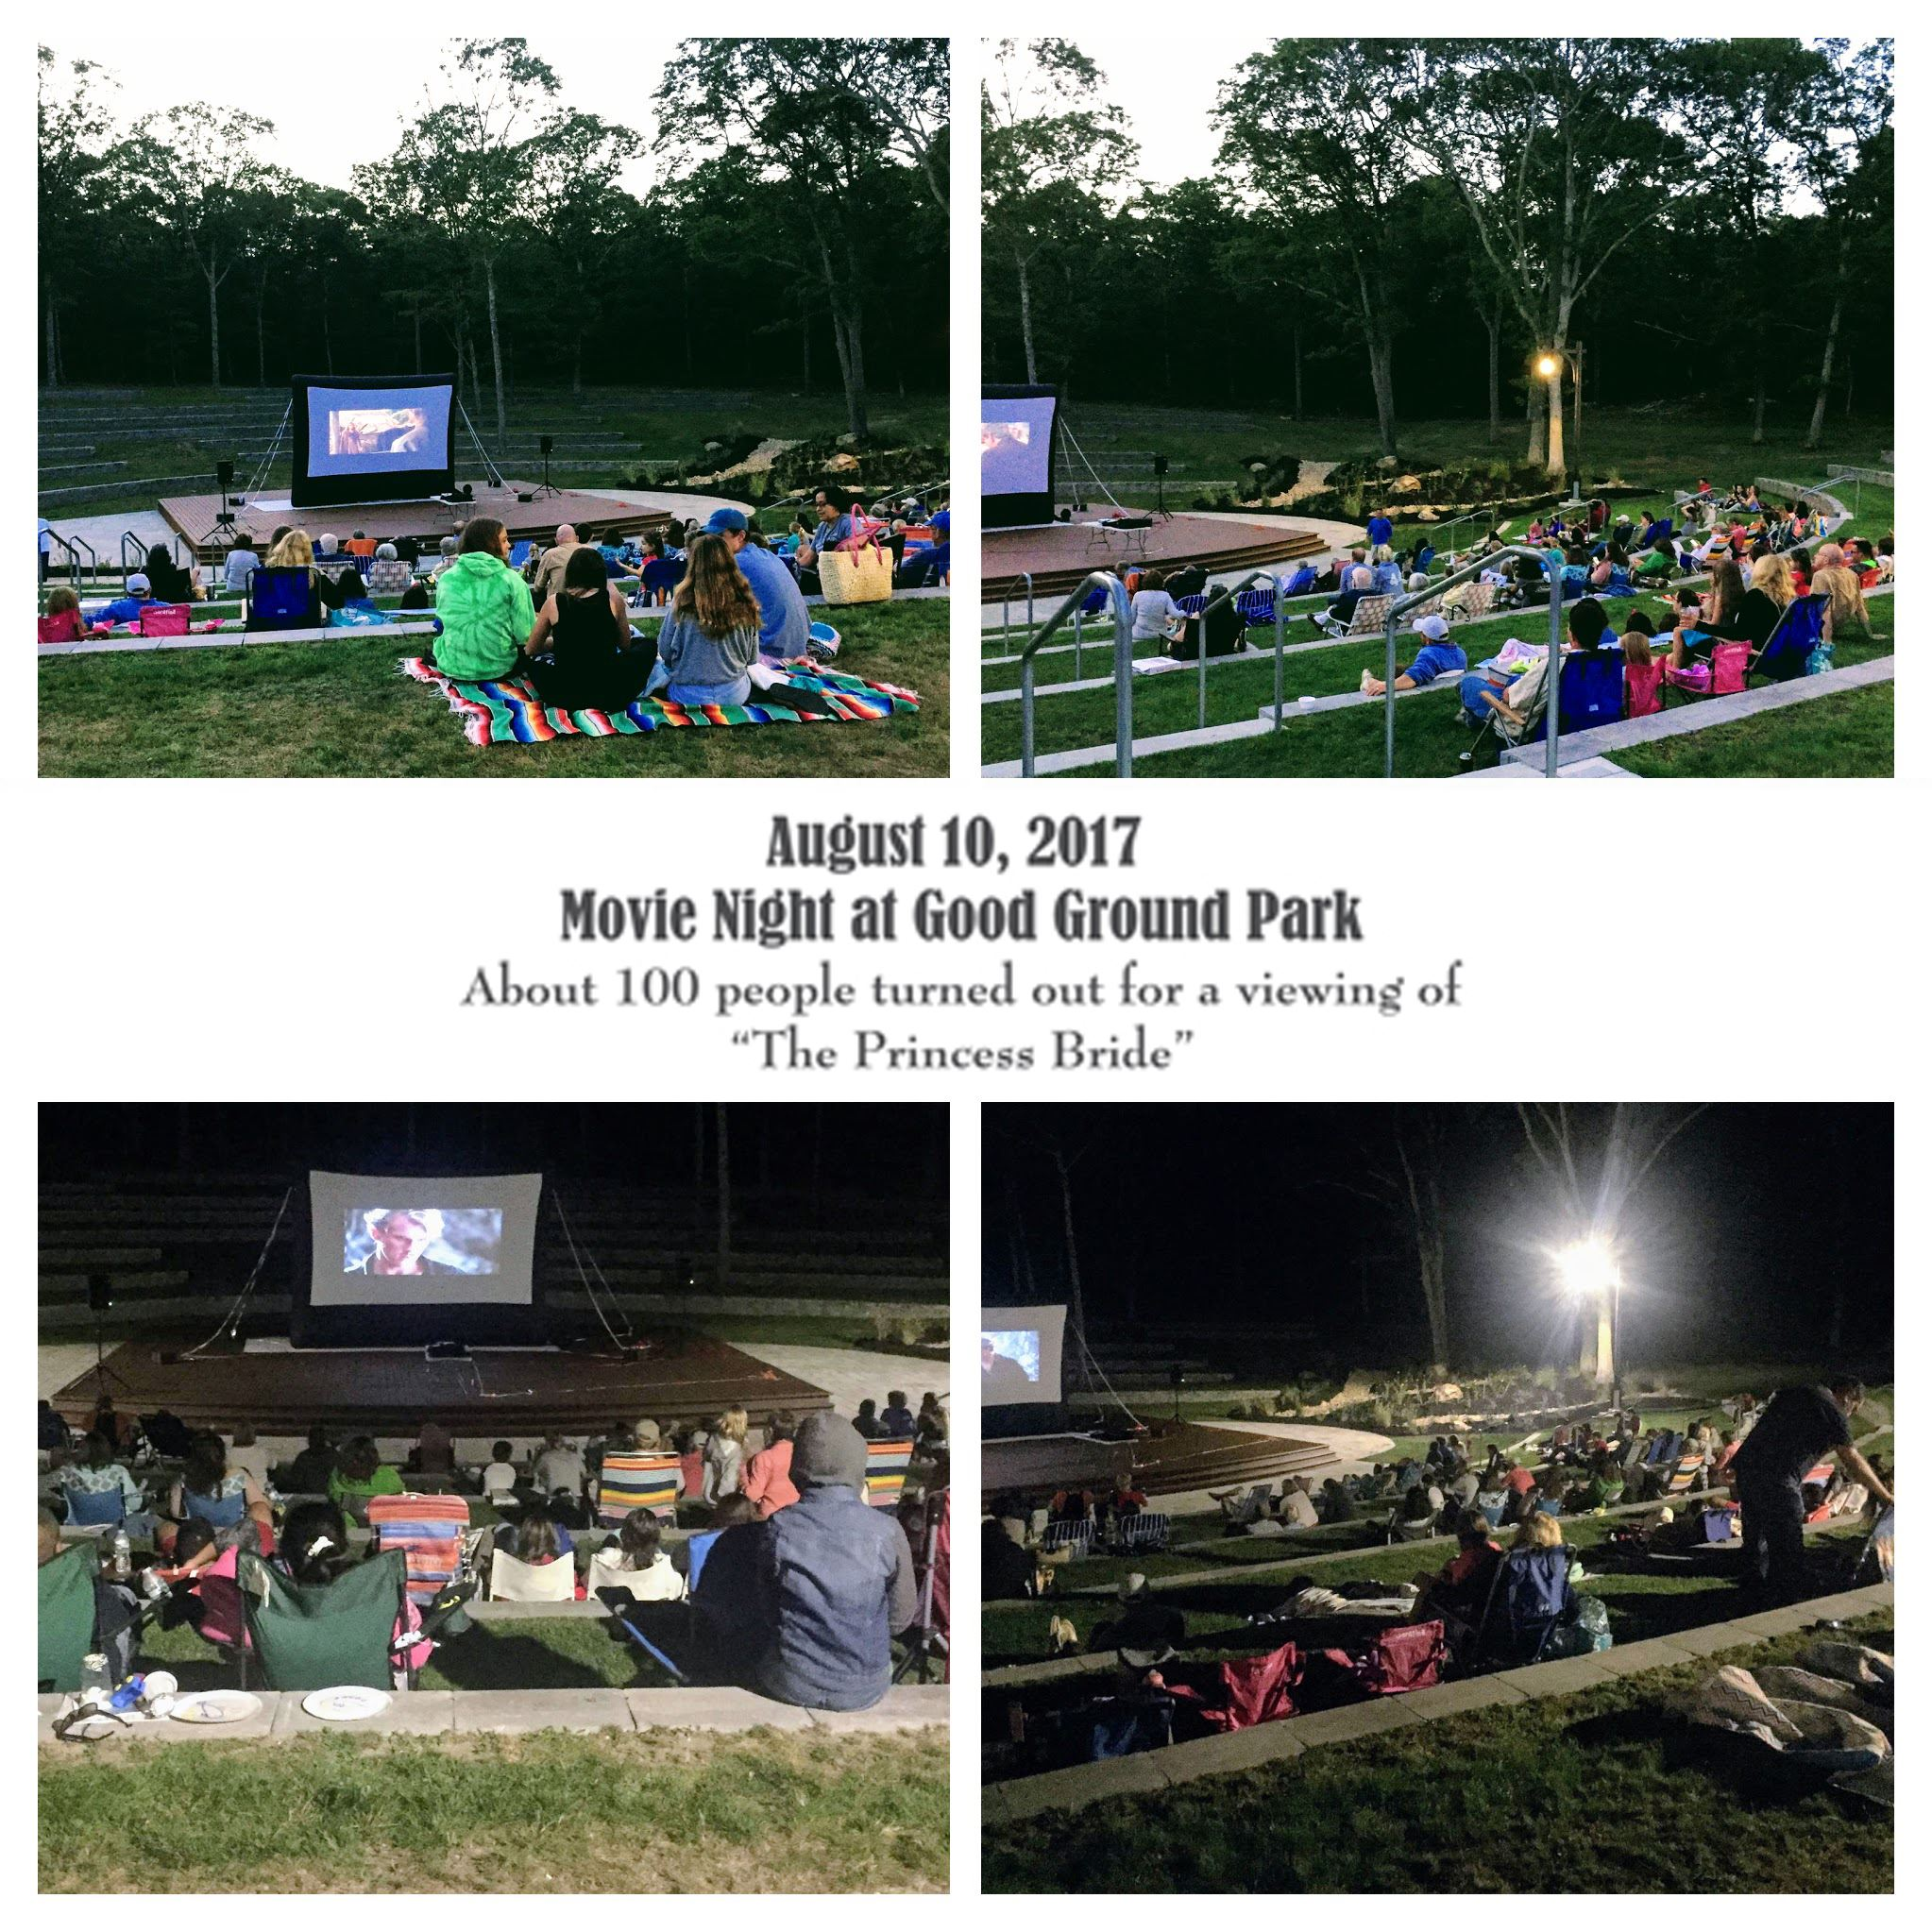 Movie-Nights_The-Princess-Bride_Good-Ground-Park